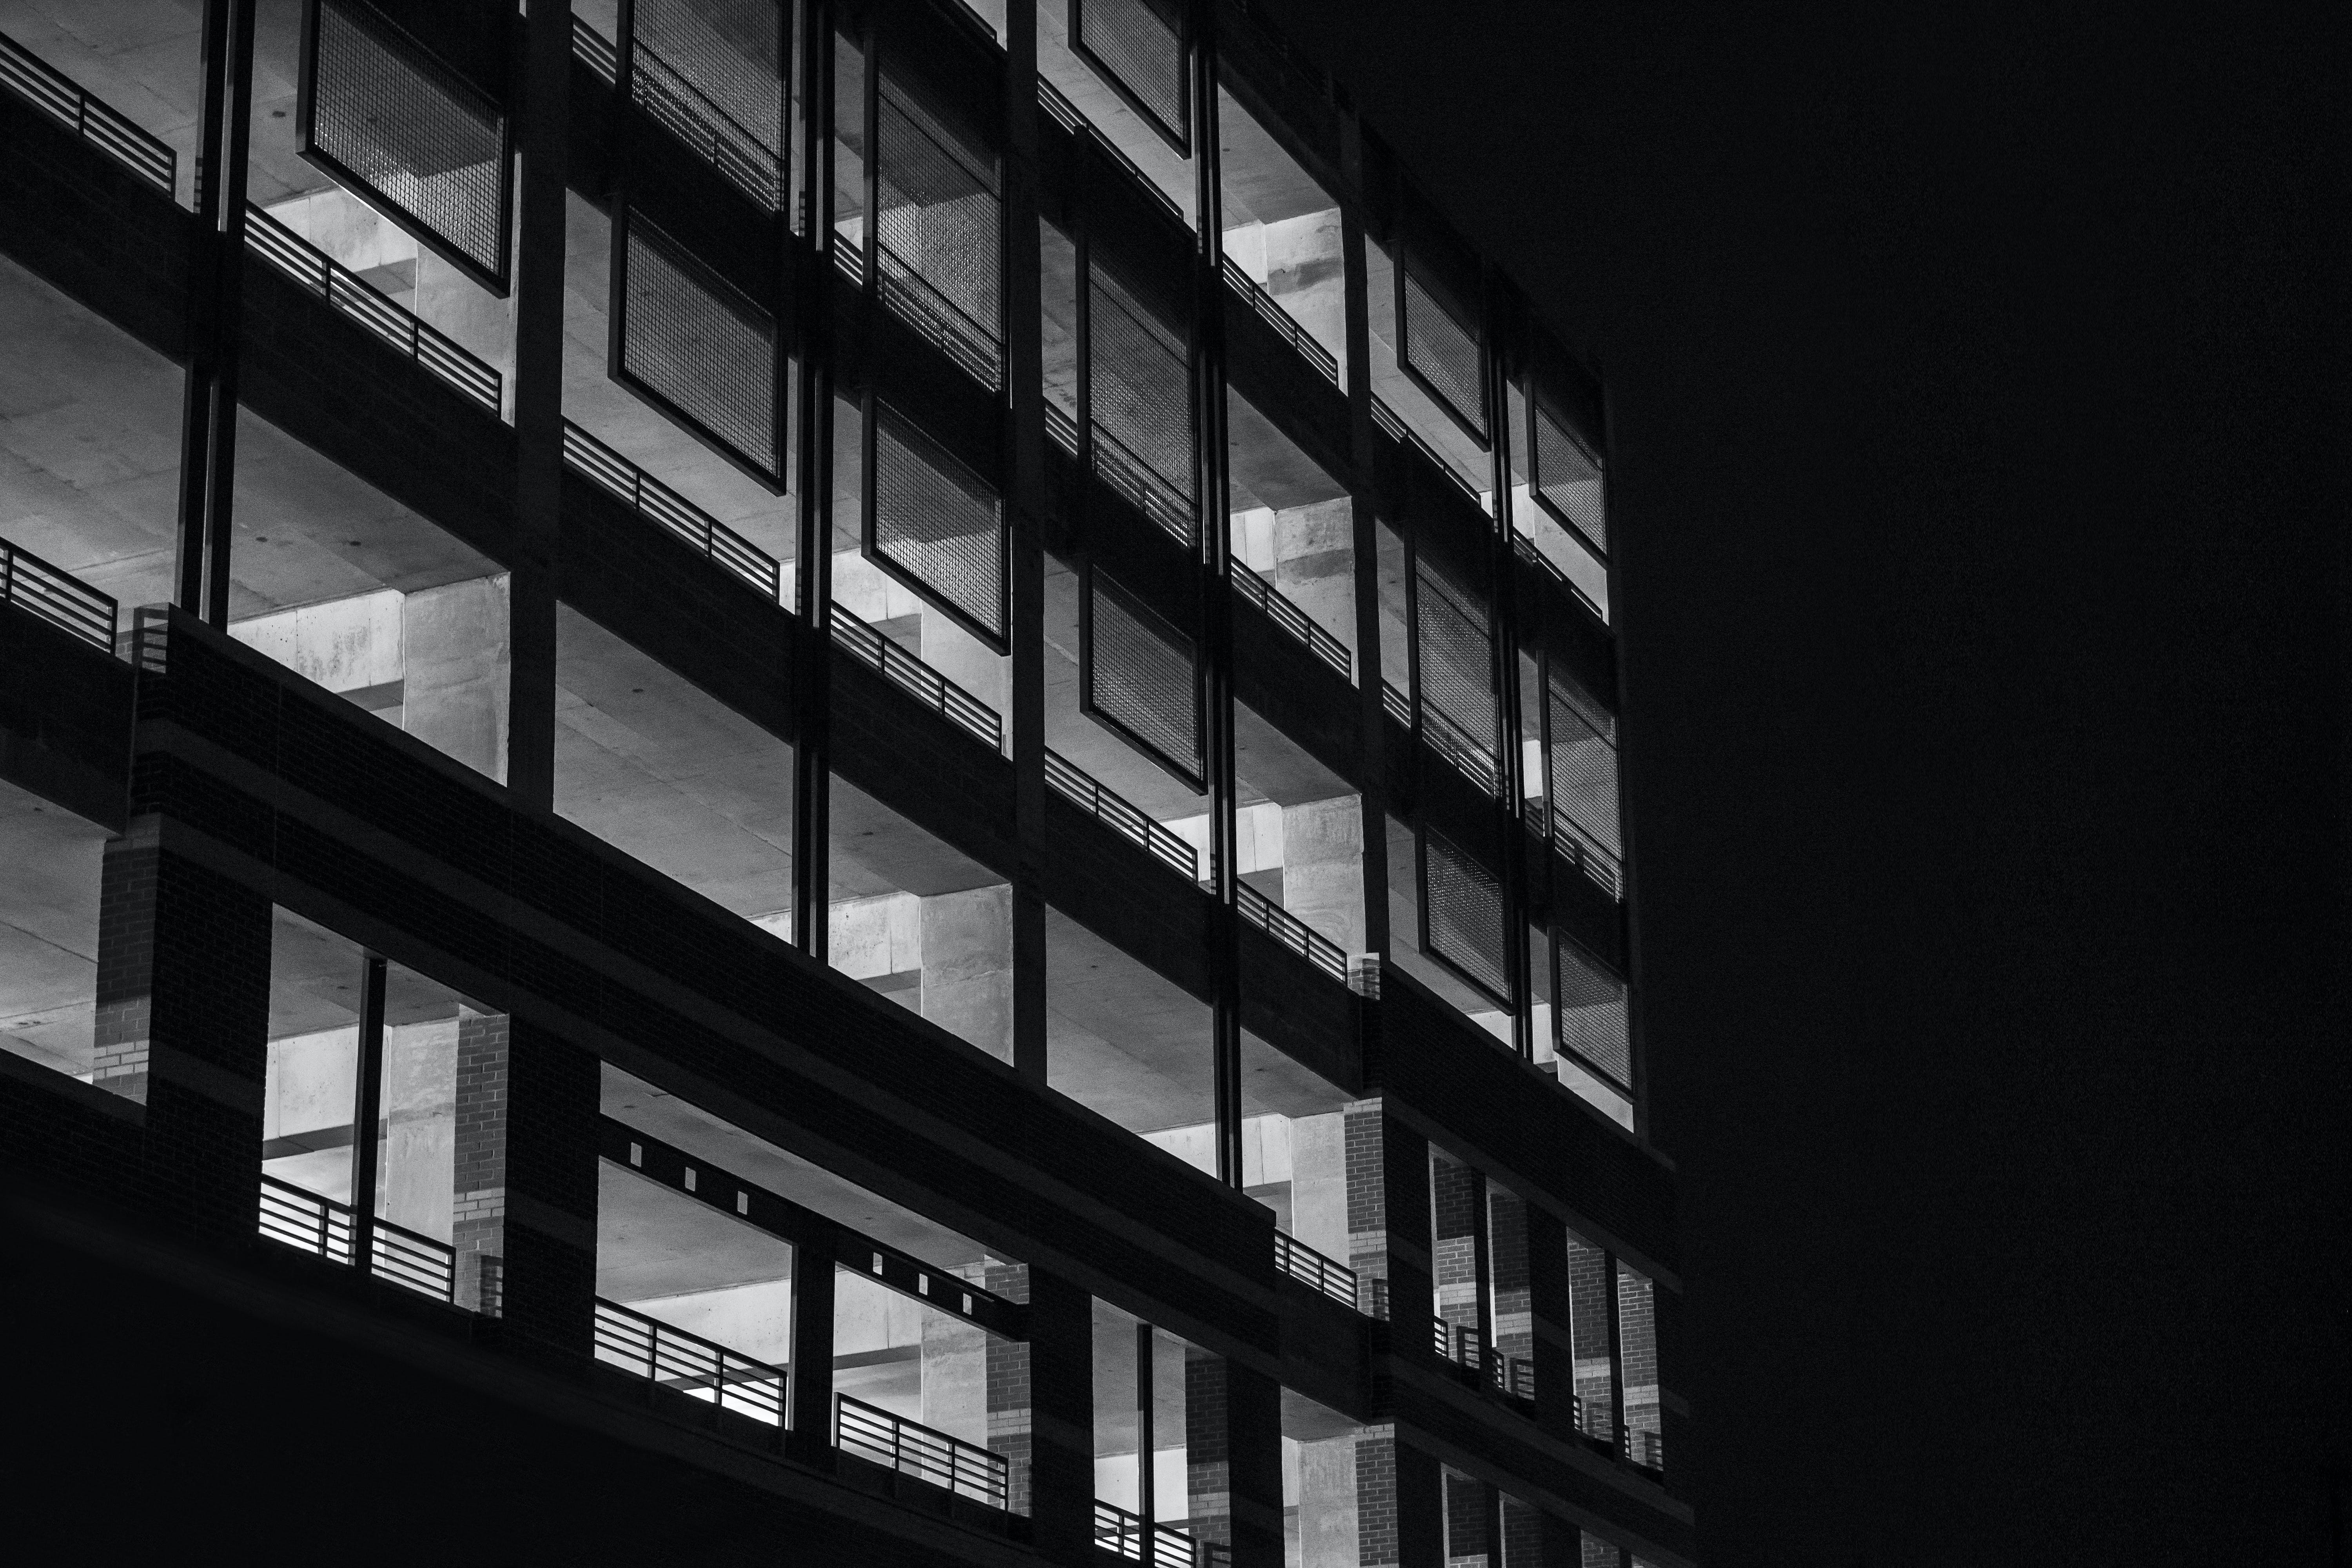 black-and-white, building, dark